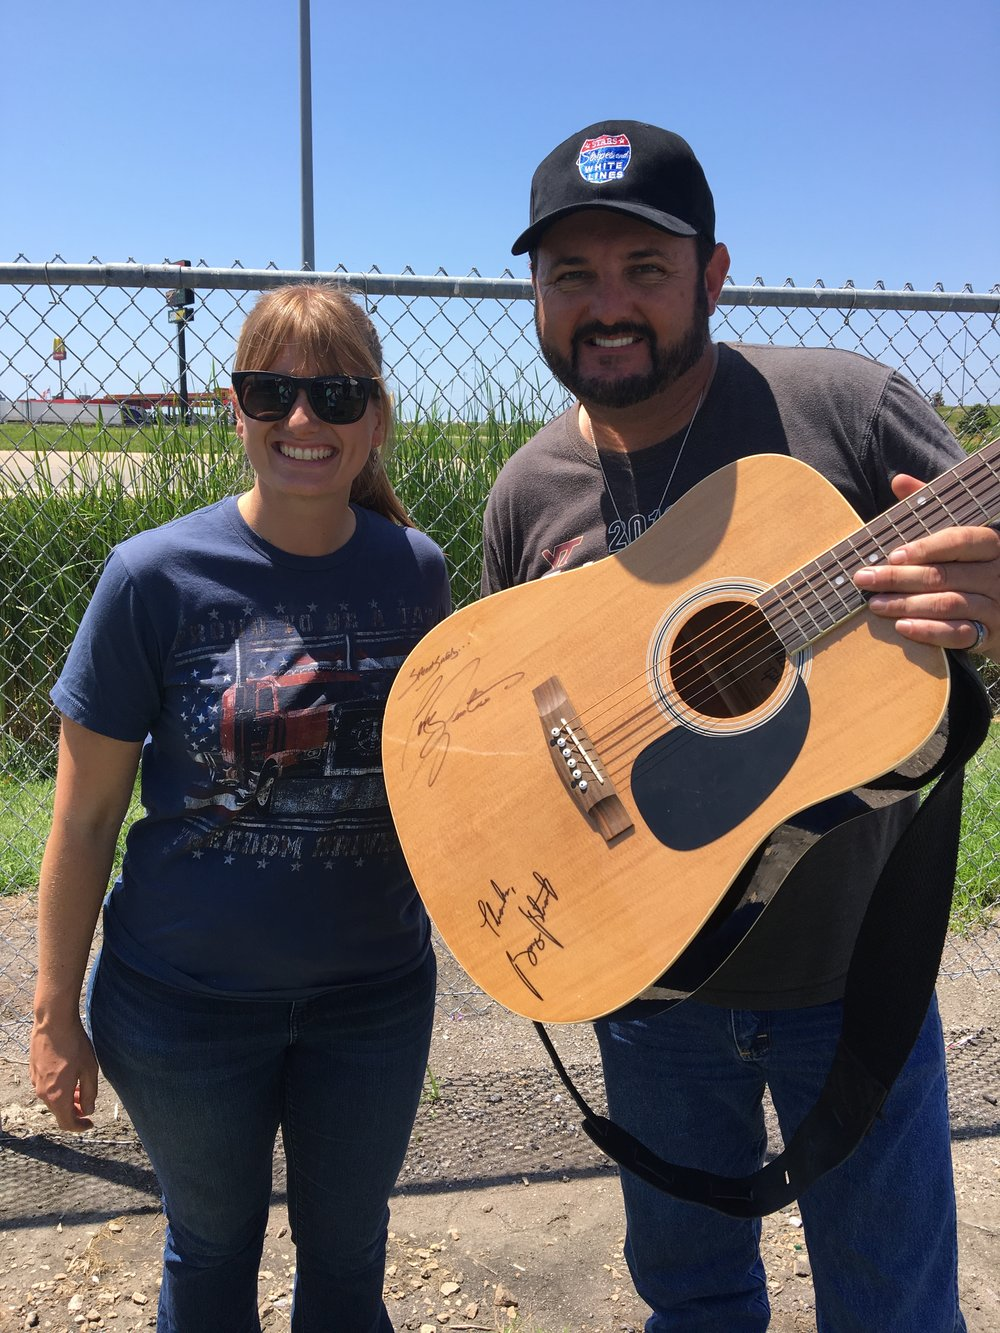 Helen Van Dam, TAT FDP director, checked out the guitar Tony Justice, country music star and truck driver, raffled off for TAT.